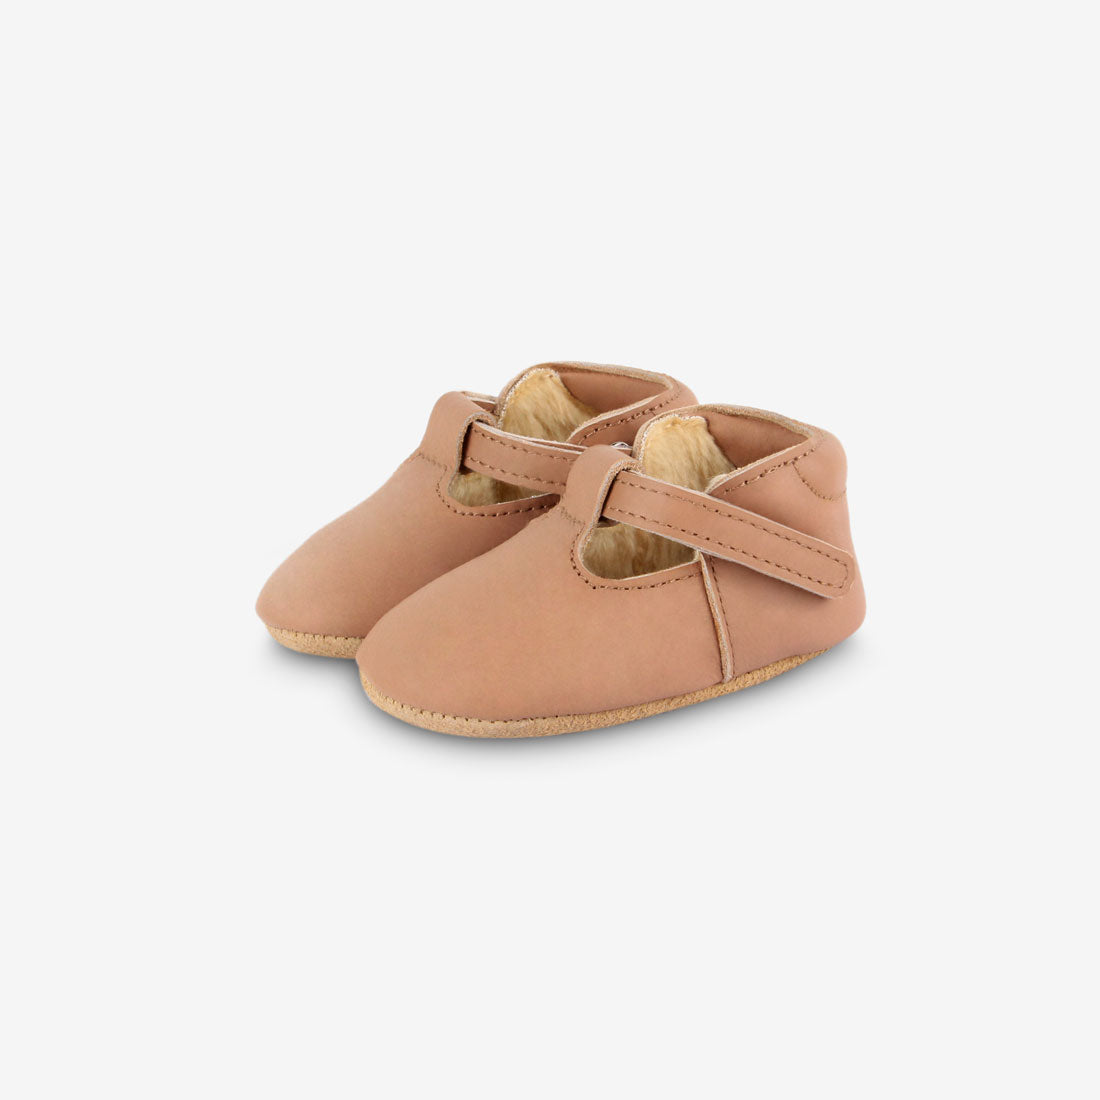 Elia Shearling Leather Shoes - Praline